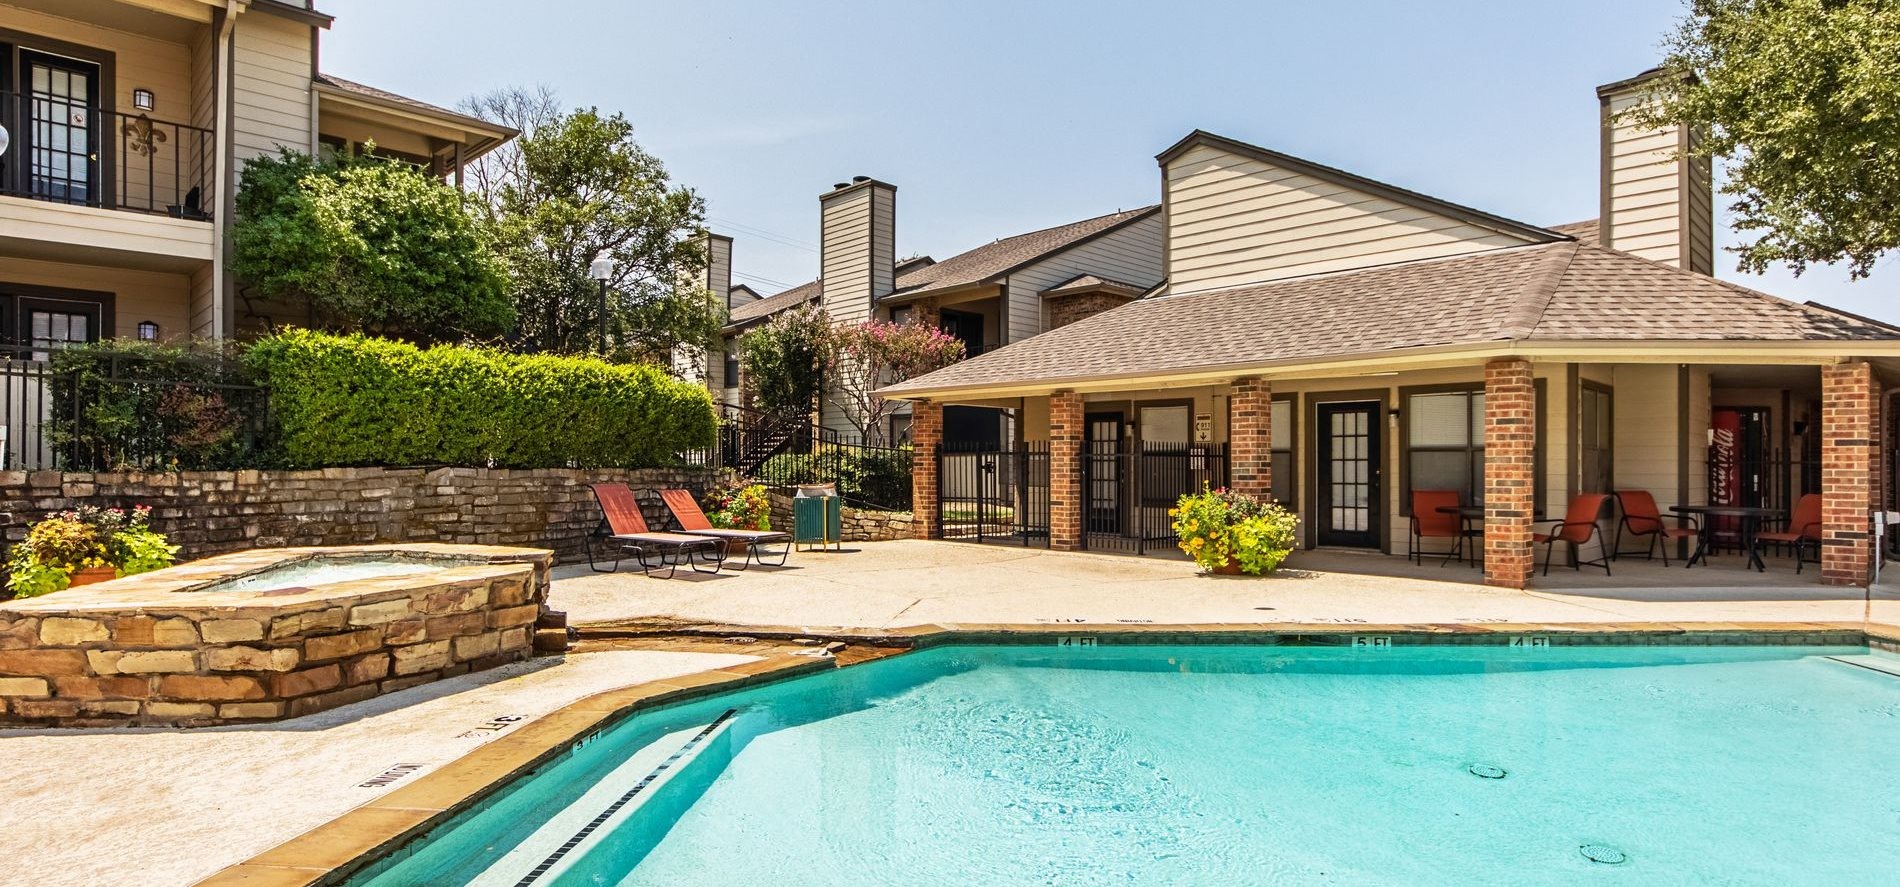 Swimming Pool at Woodmeade Apartments in Irving, Texas, TX